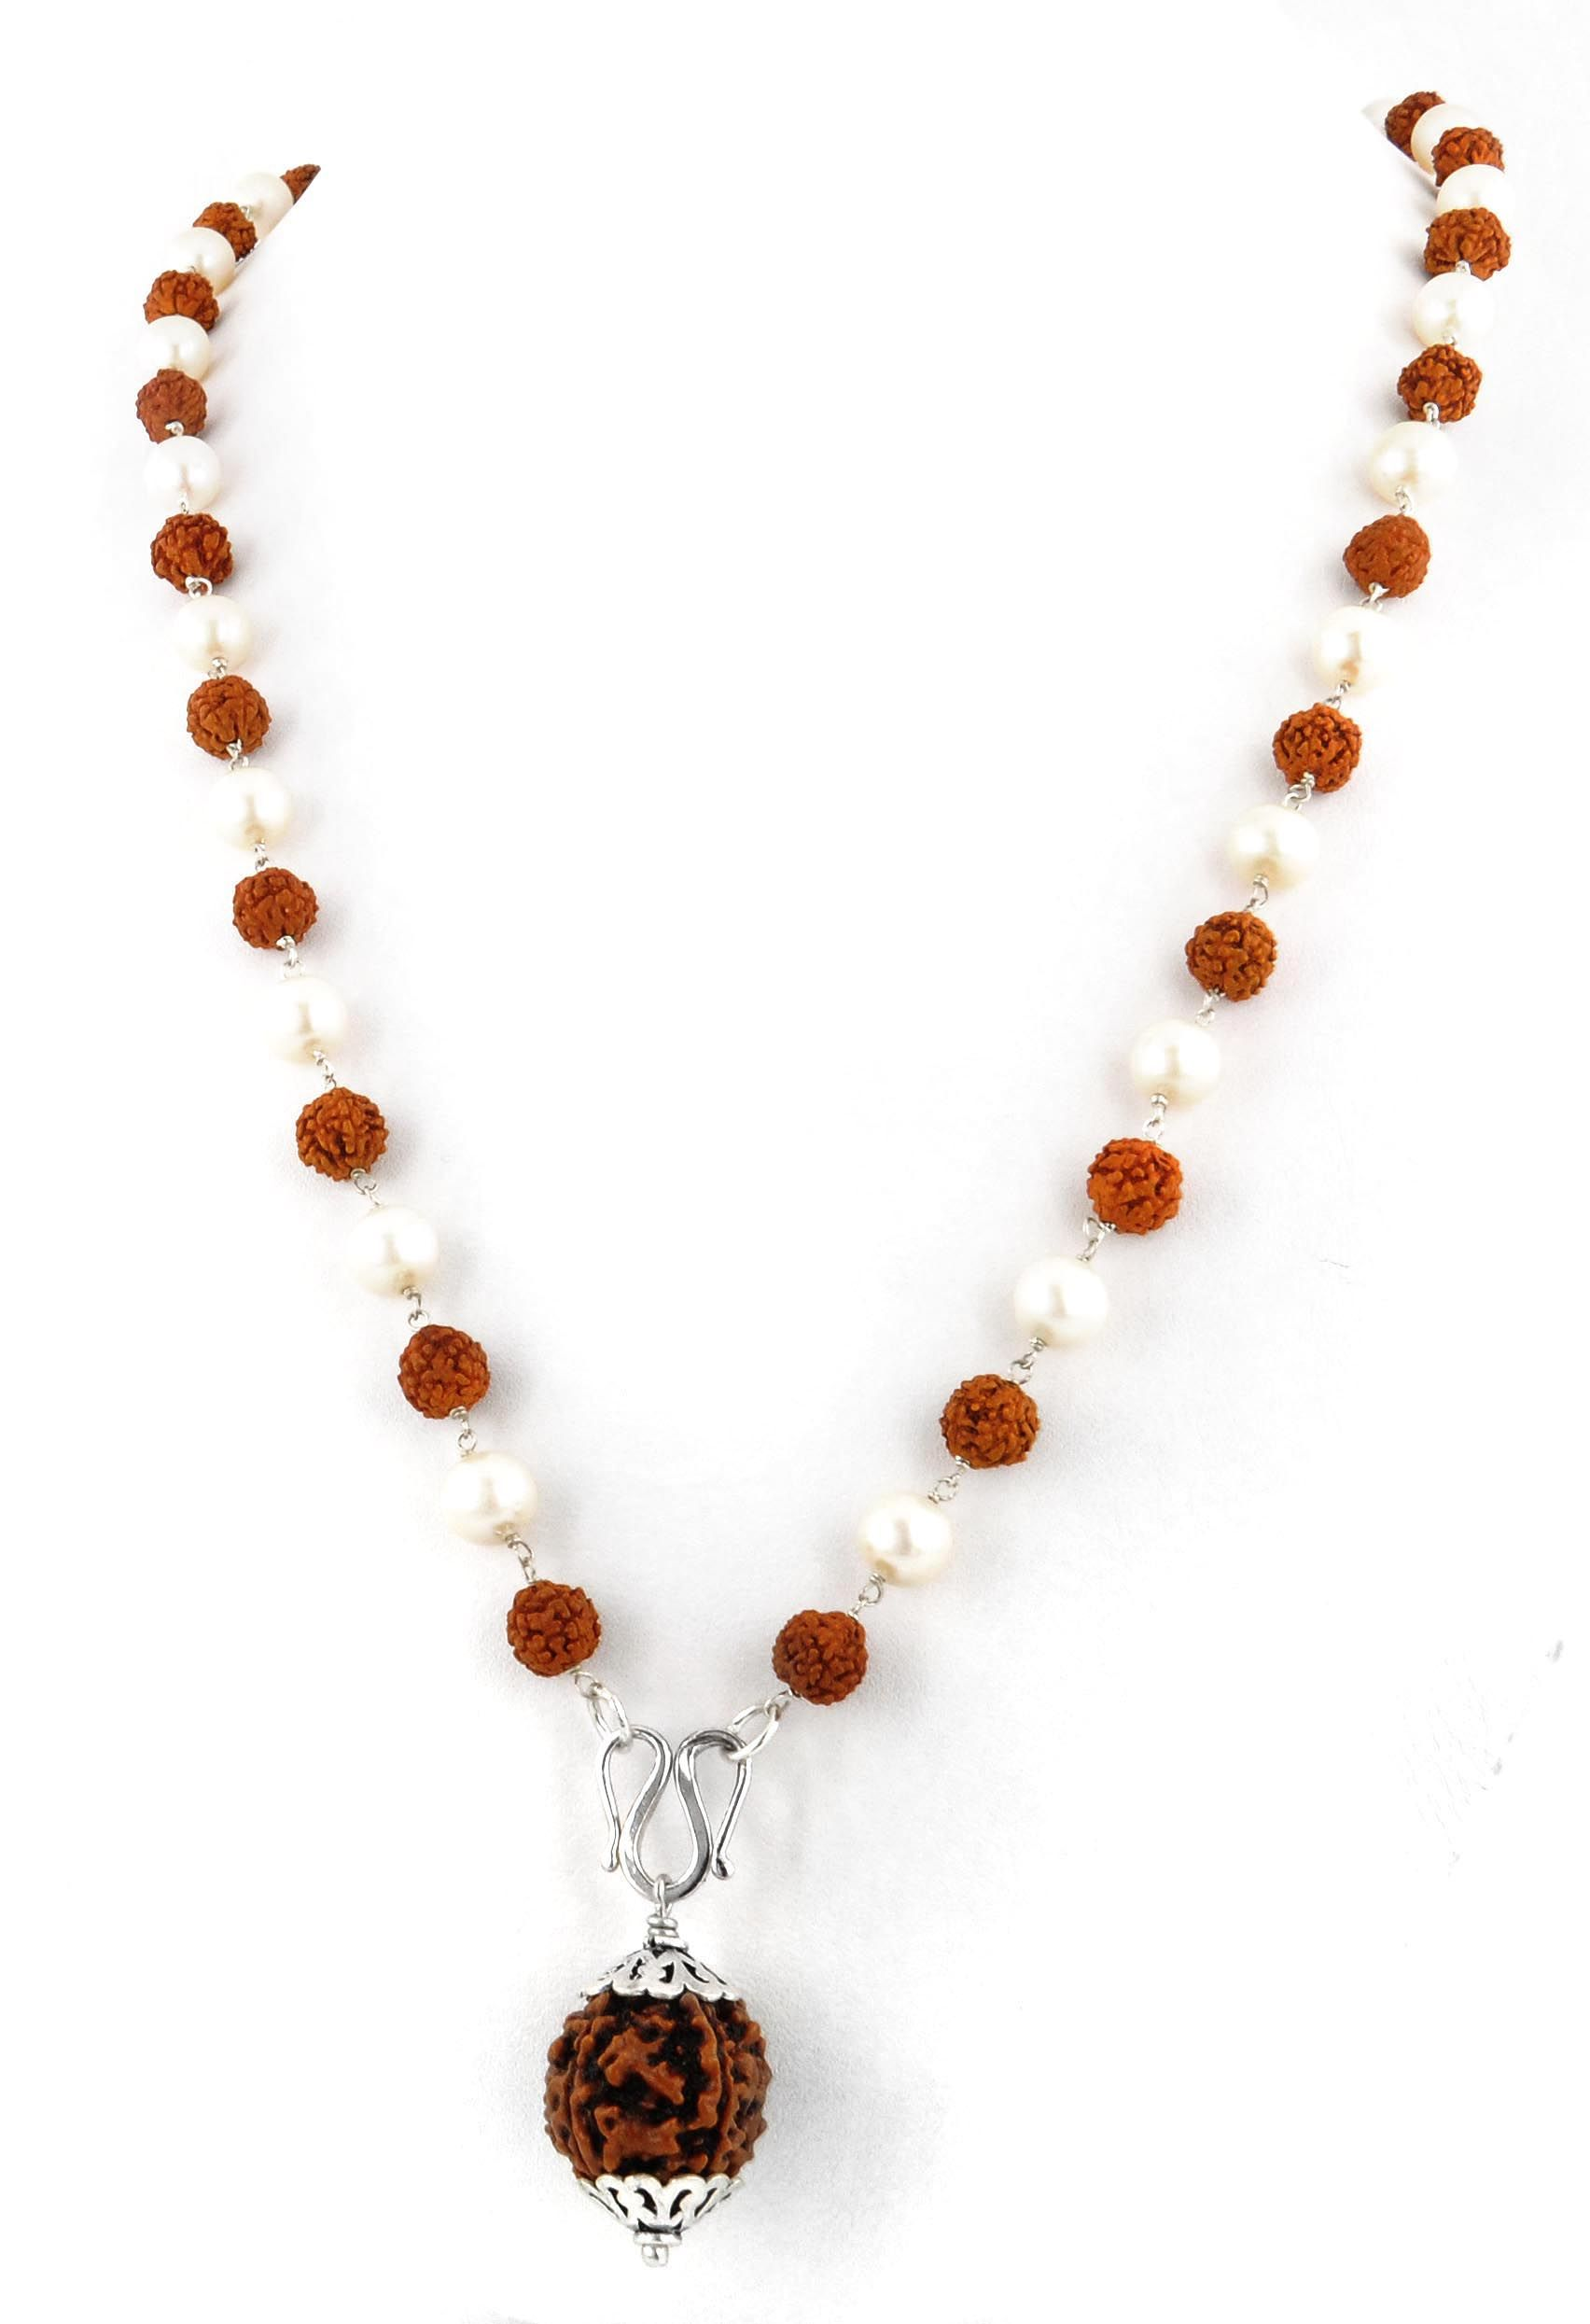 db876b0a09d2 Rudraksh Pendant With Chain